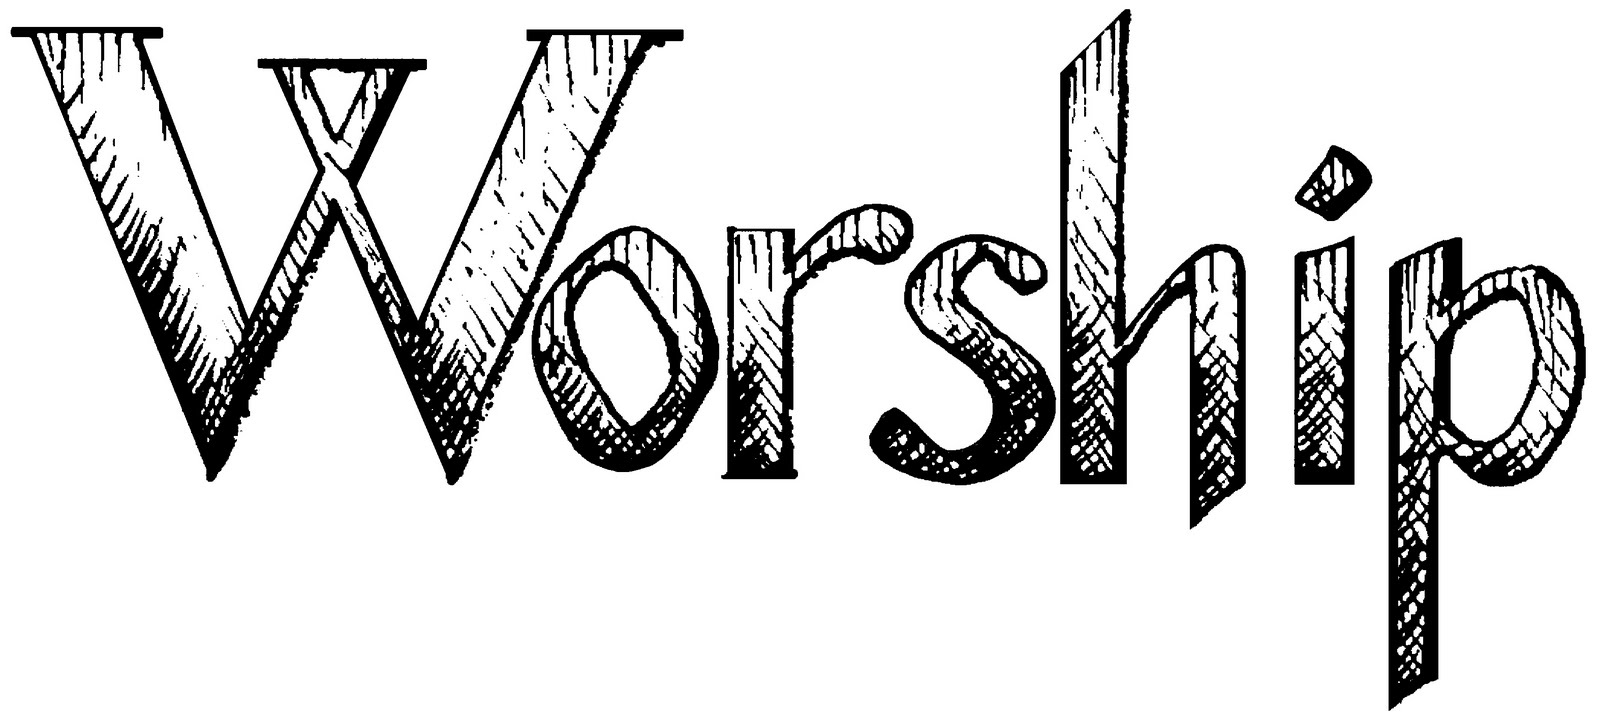 Sunday worship clip art cliparts for Worship schedule template